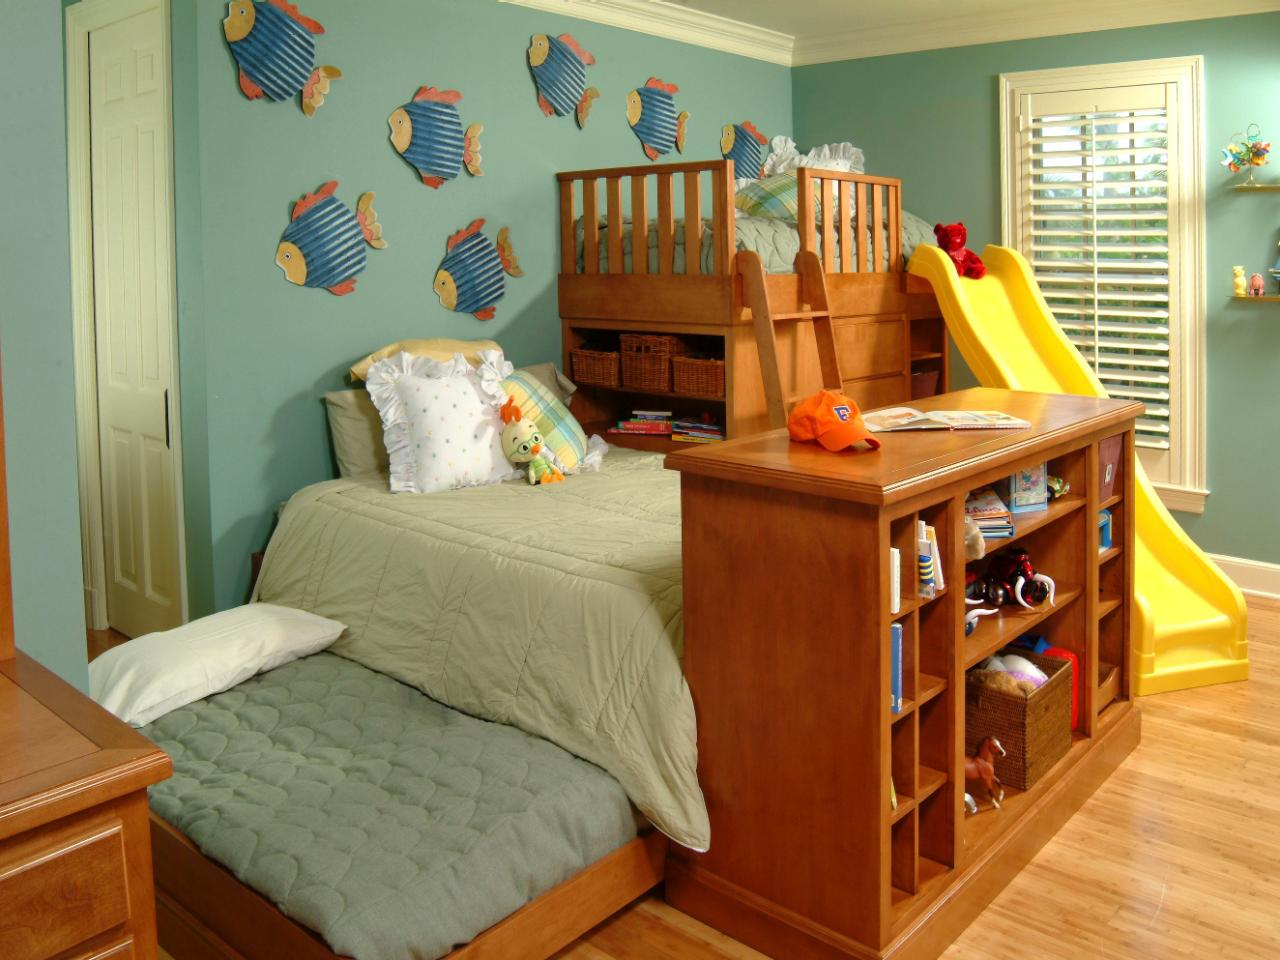 Wonderful Storage Ideas For Small Kids Bedrooms Part - 13: Unique Triple Play: Three Beds In The Space Of One Kids Room Storage